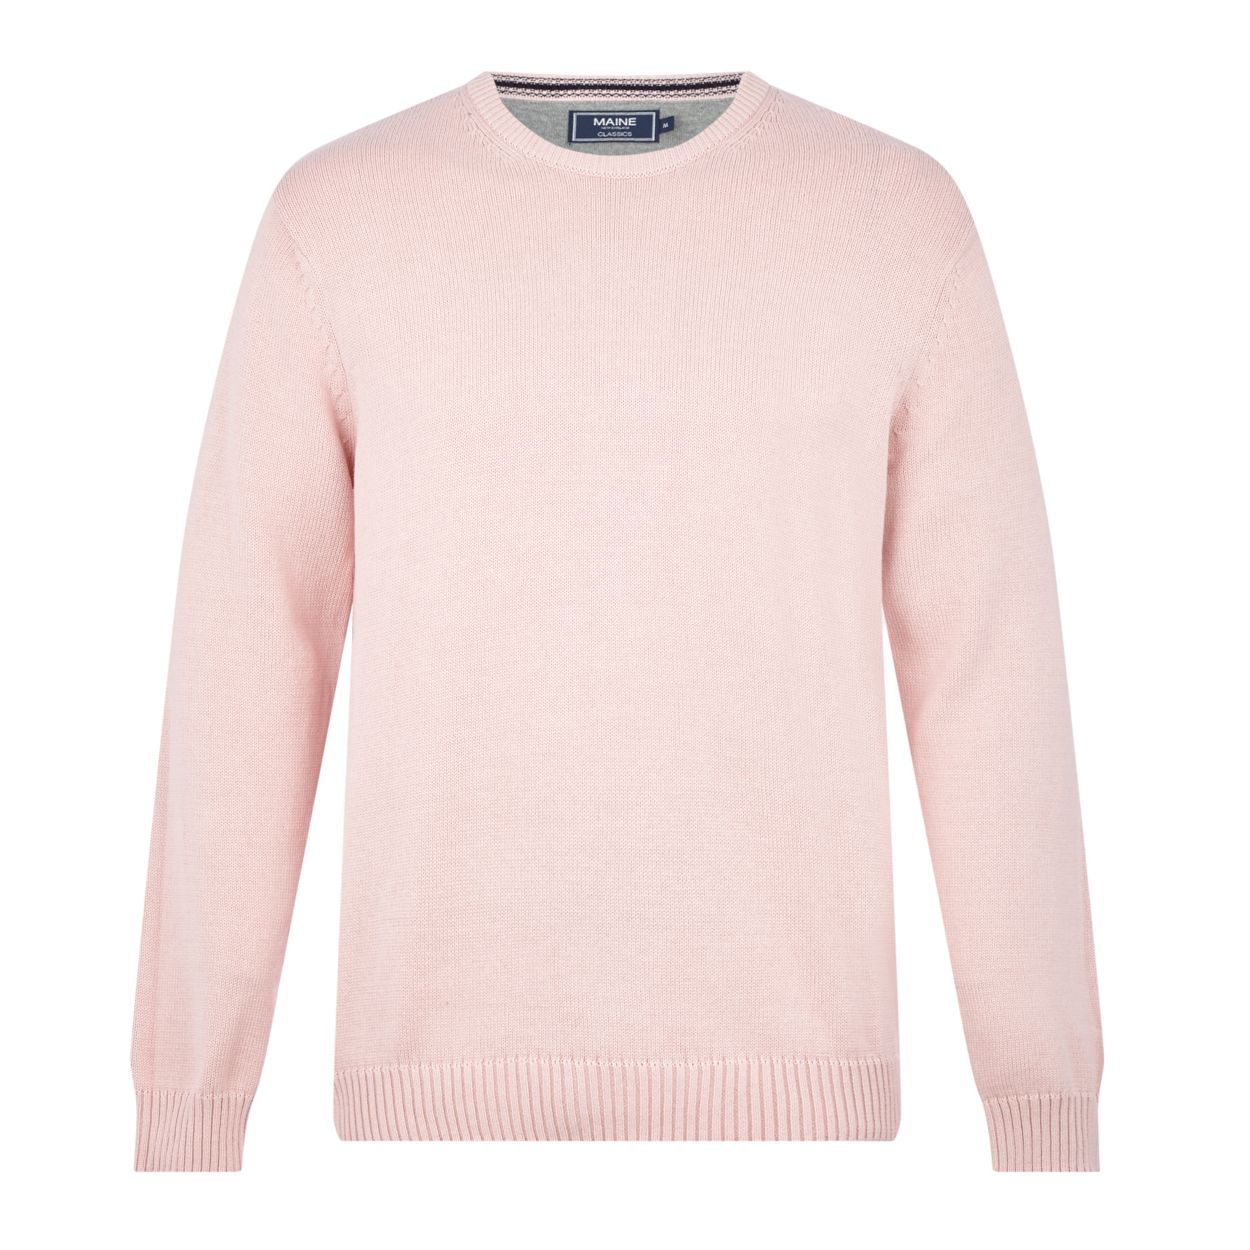 Maine New England Pale pink crew neck jumper